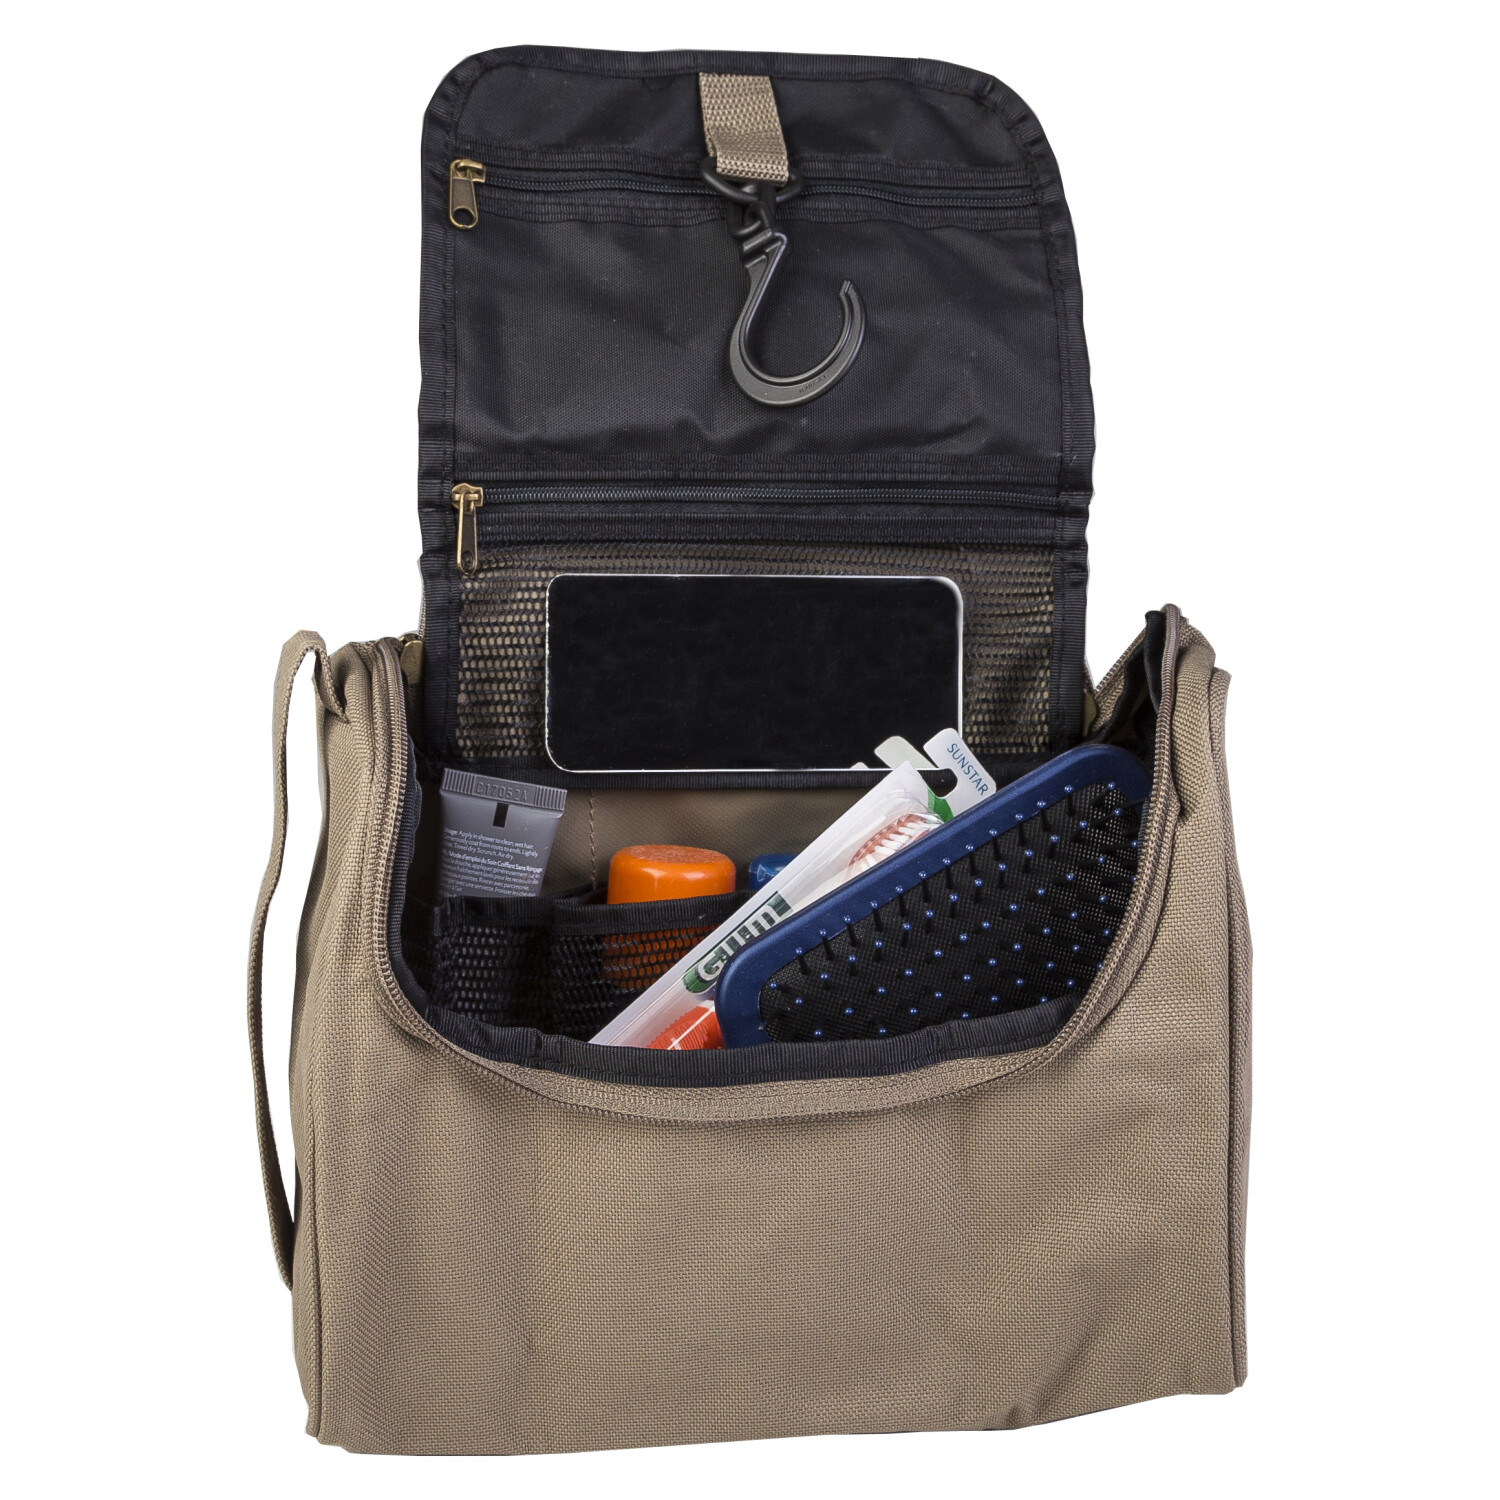 Hanging Travel Toiletry Bag for Men - One Size - Tan